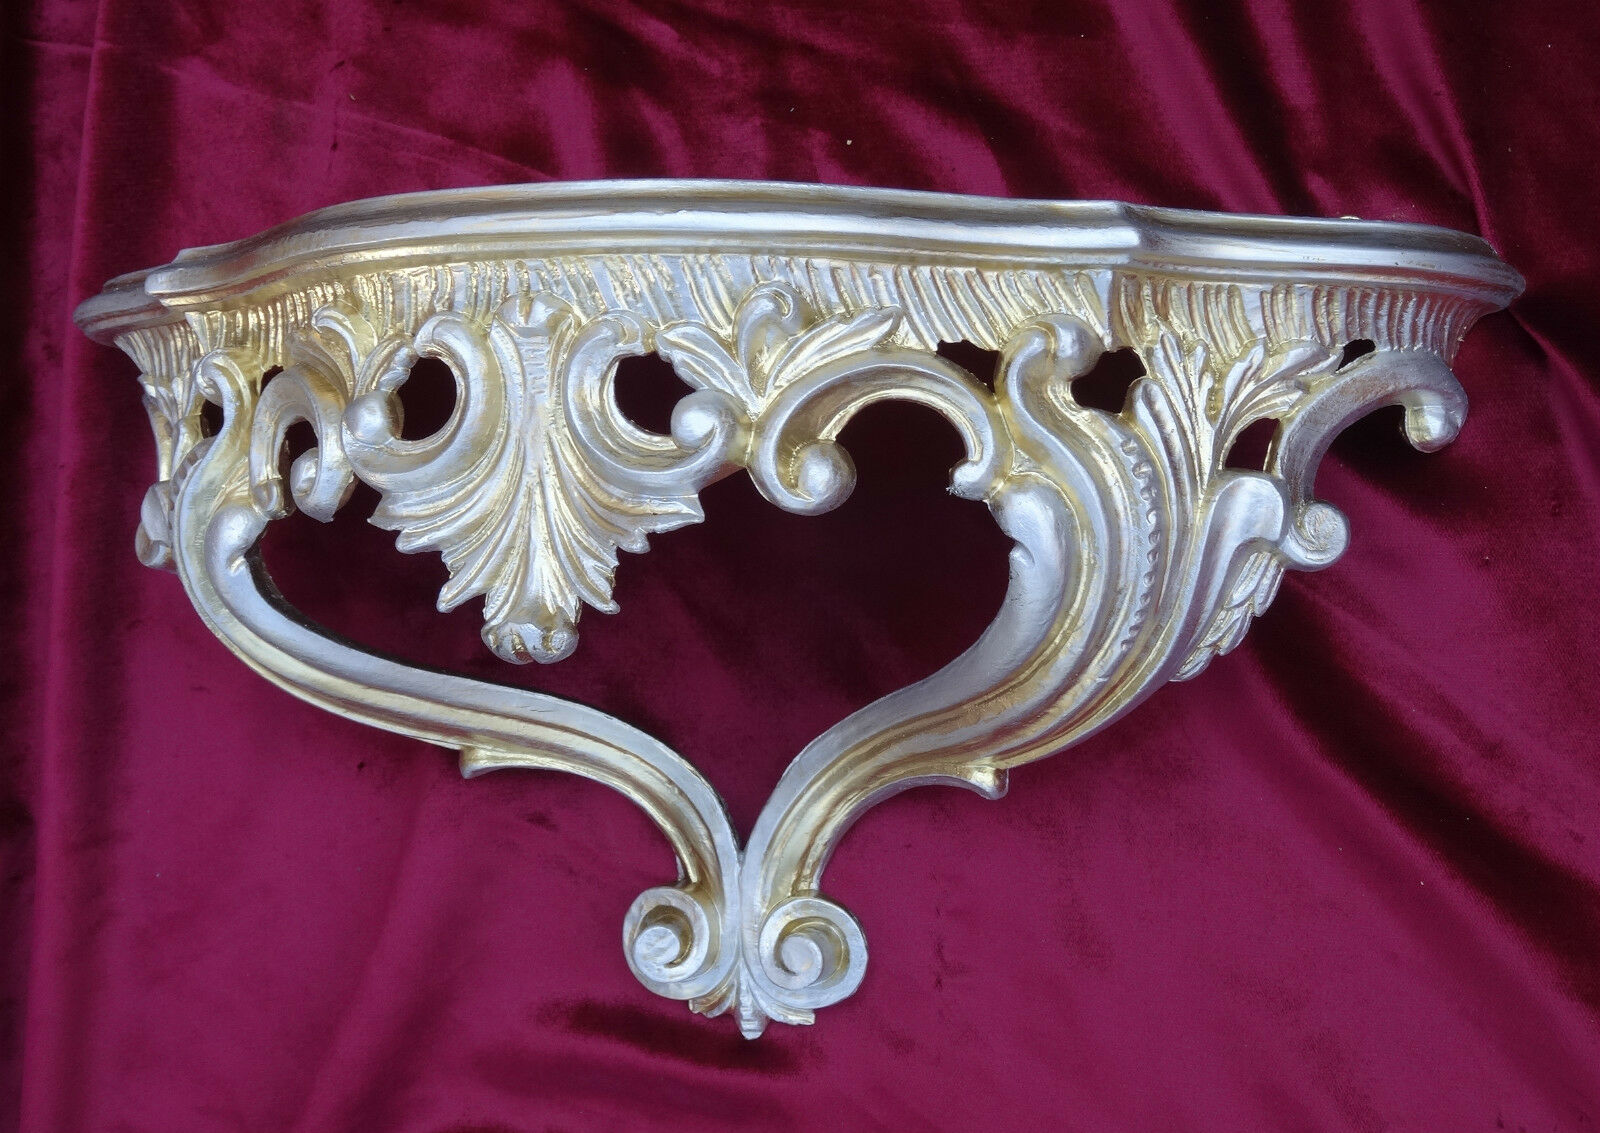 console applique murale console rangement or argent repro baroque 38x20x15 5 ebay. Black Bedroom Furniture Sets. Home Design Ideas